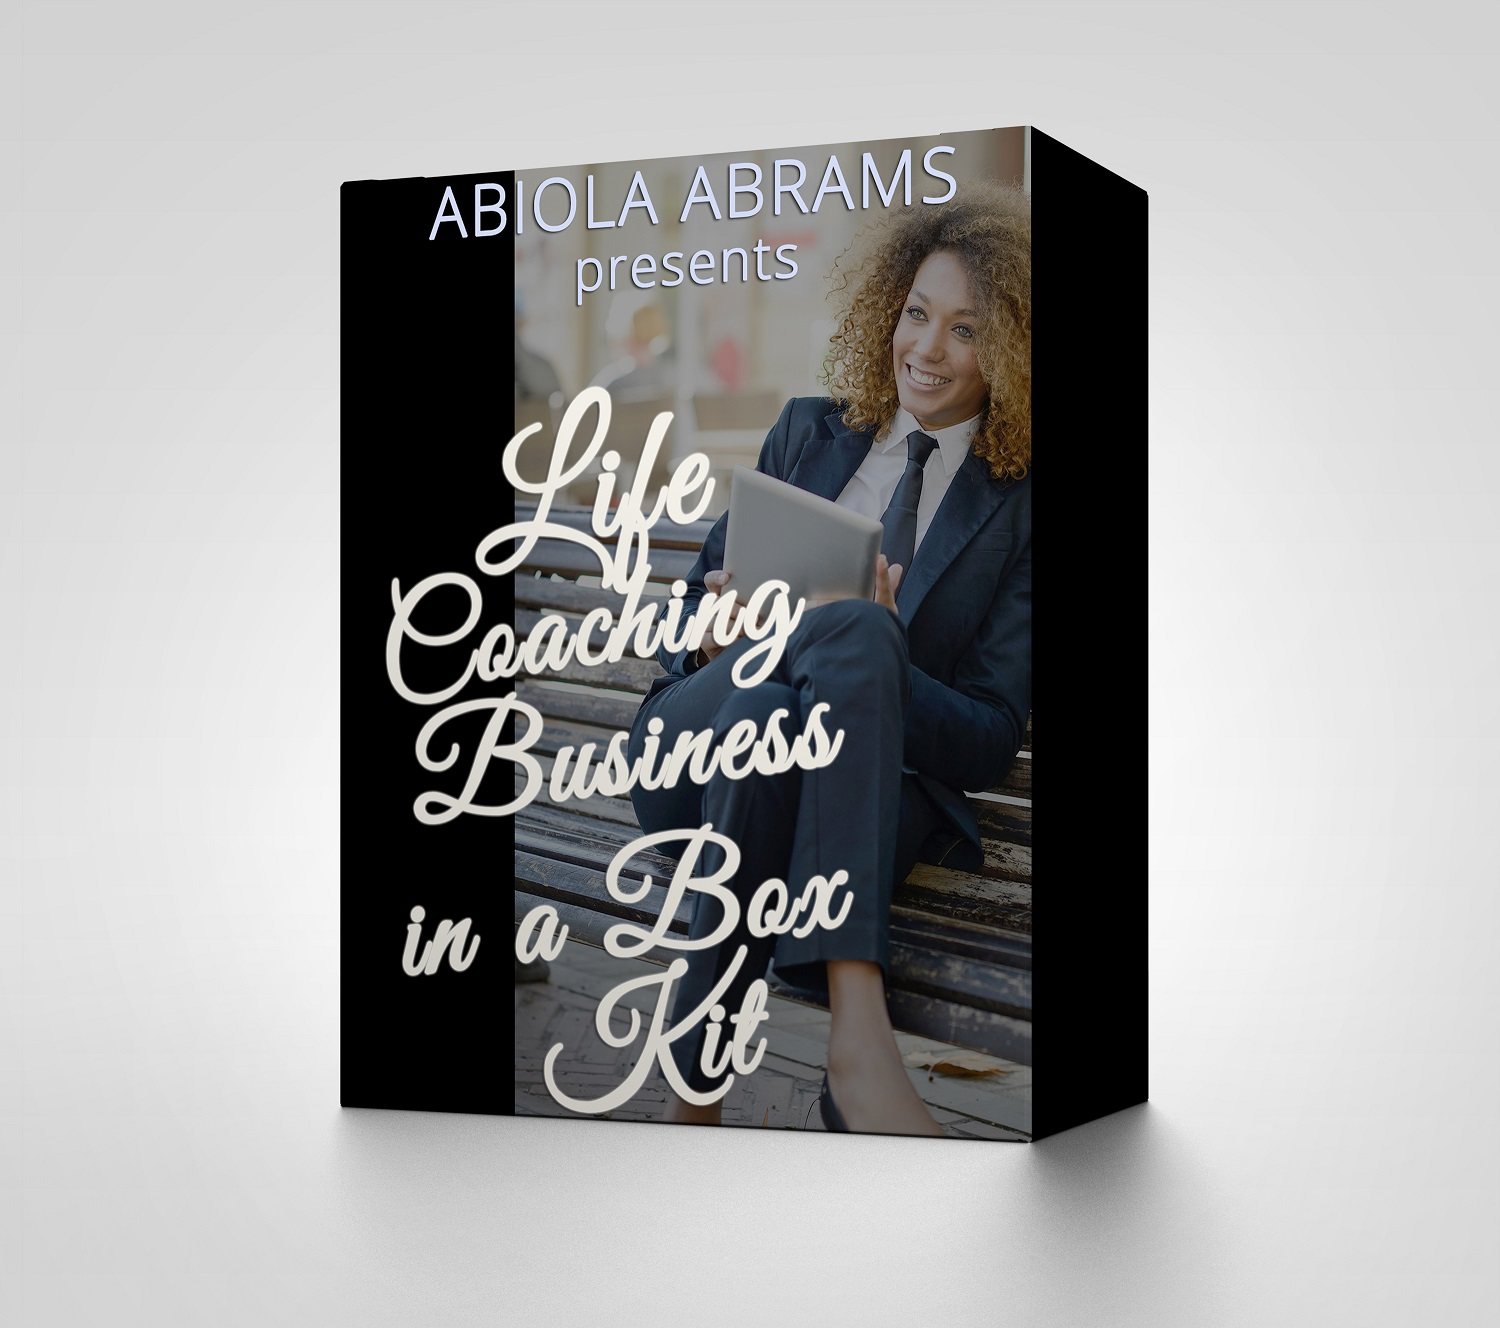 Life Coach Business Startup - Coaching Business in a Box Kit